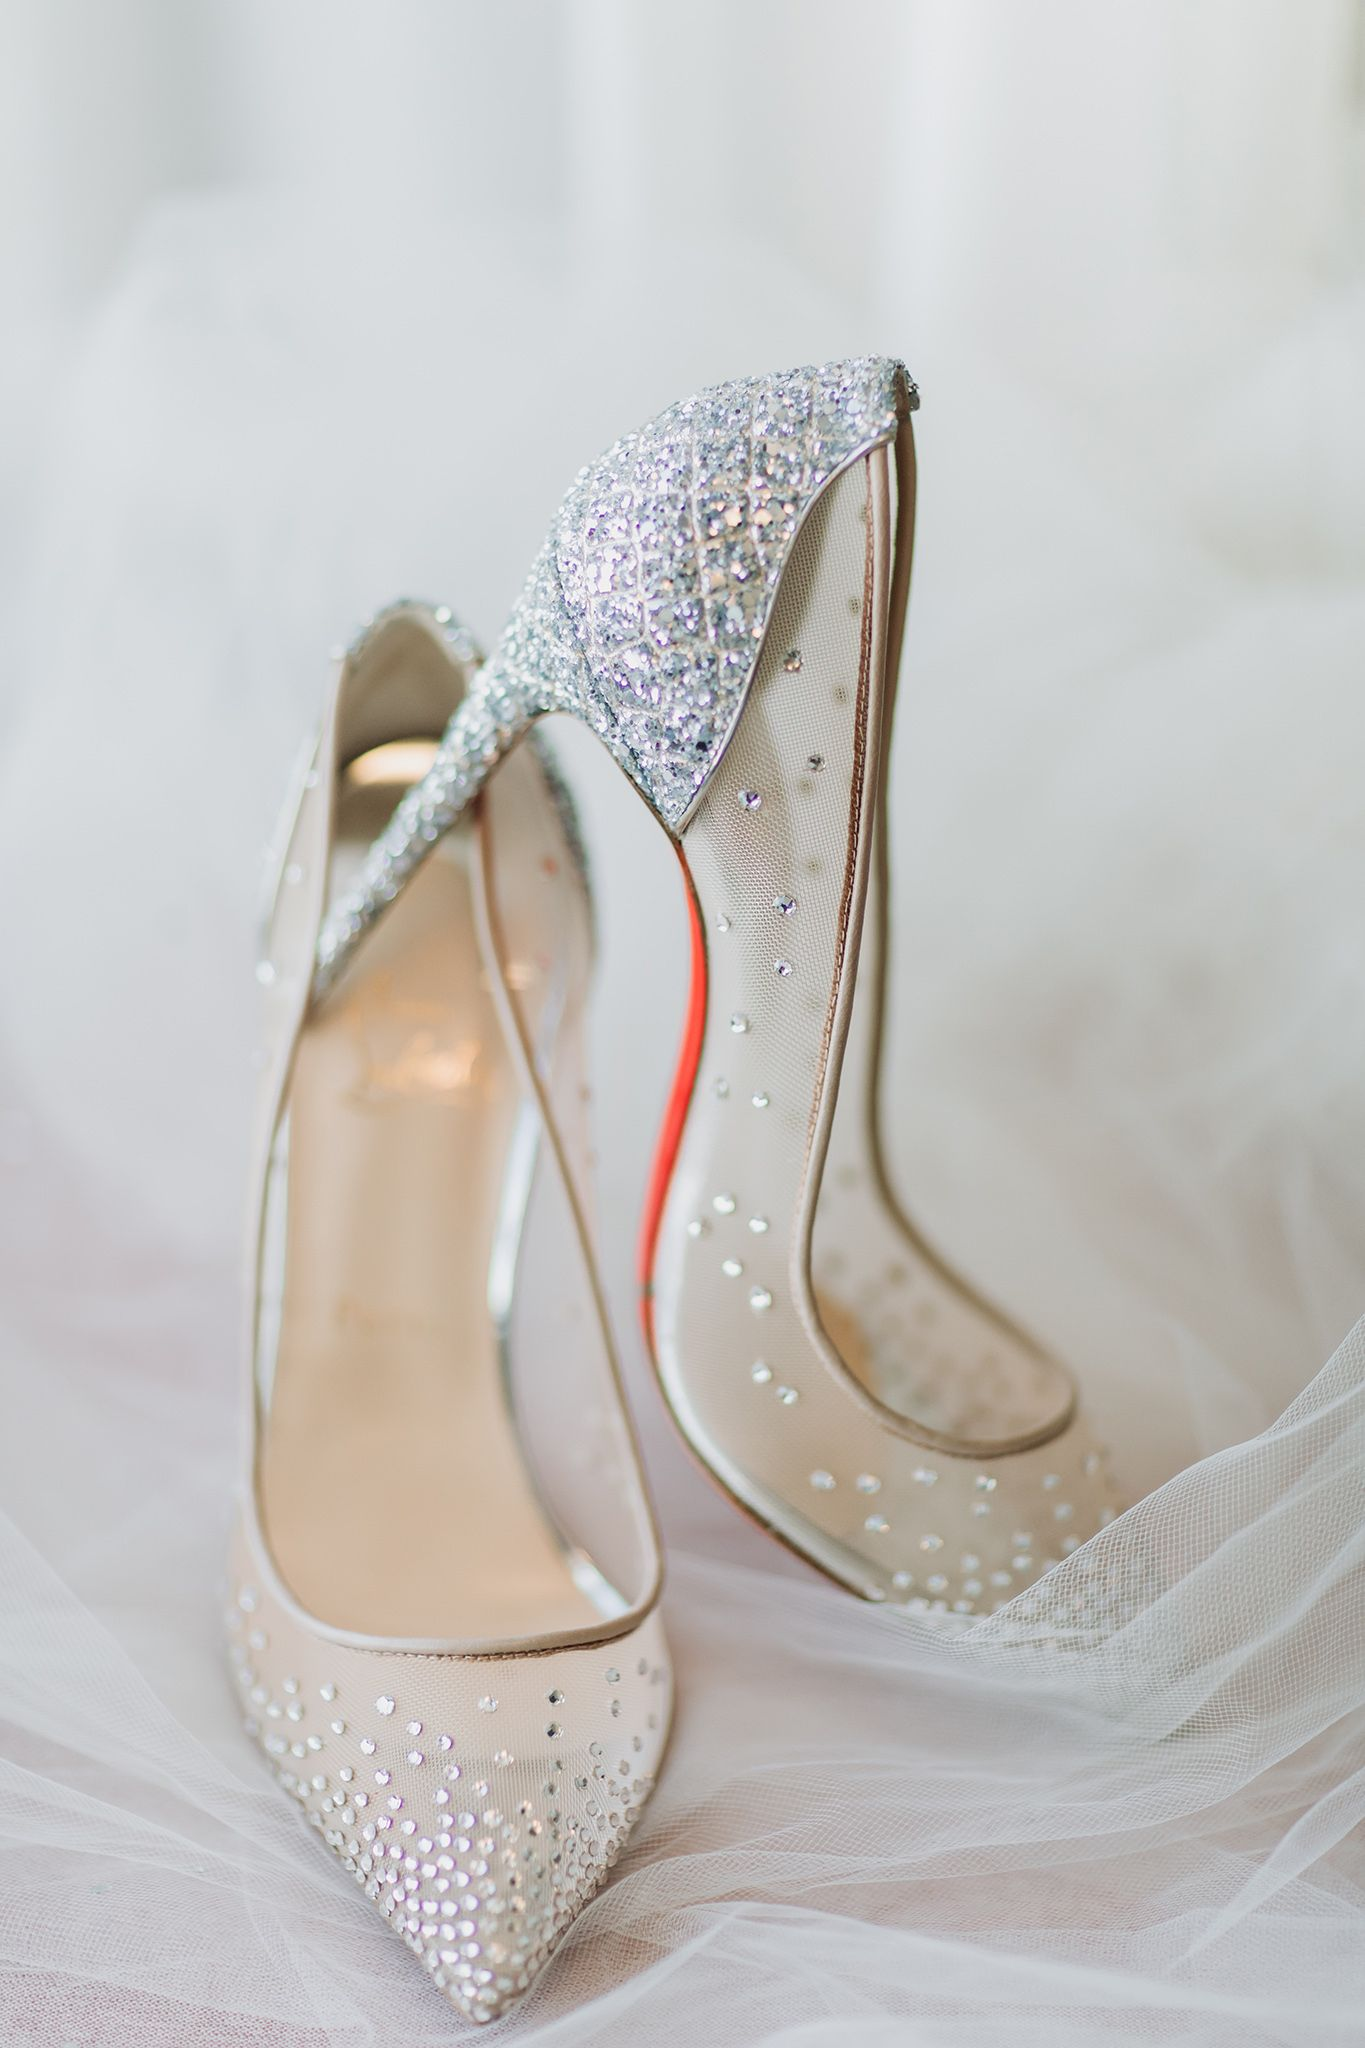 Glittery Christian Louboutin Make The Perfect Wedding Shoes! Bridal Details  Photographed By Edmonton Wedding Photographer